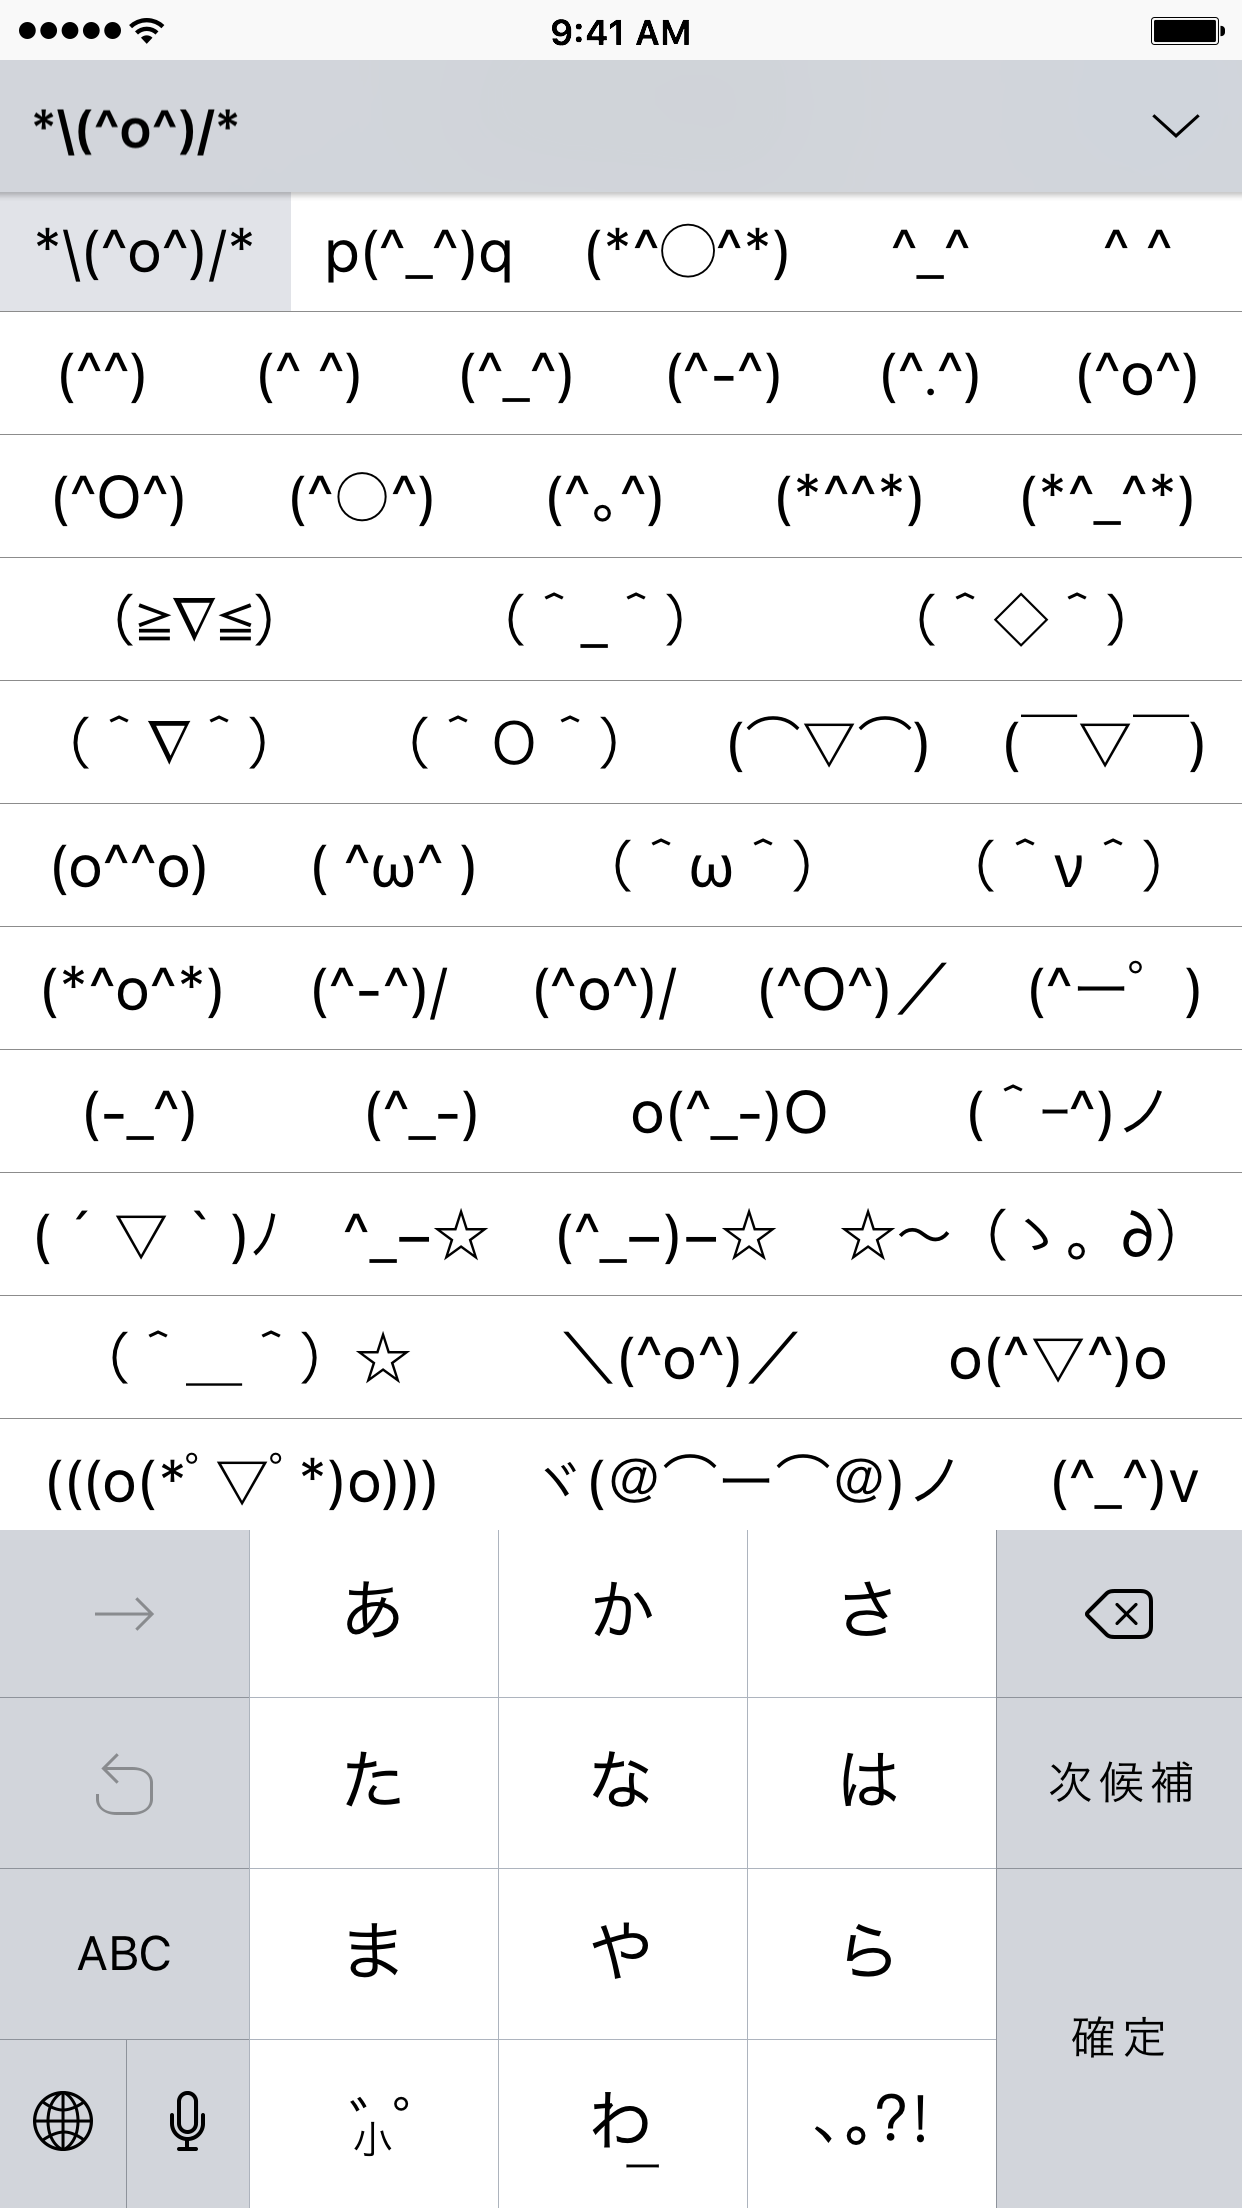 This stock keyboard is hiding tons of fun emoticons \(^o^)/